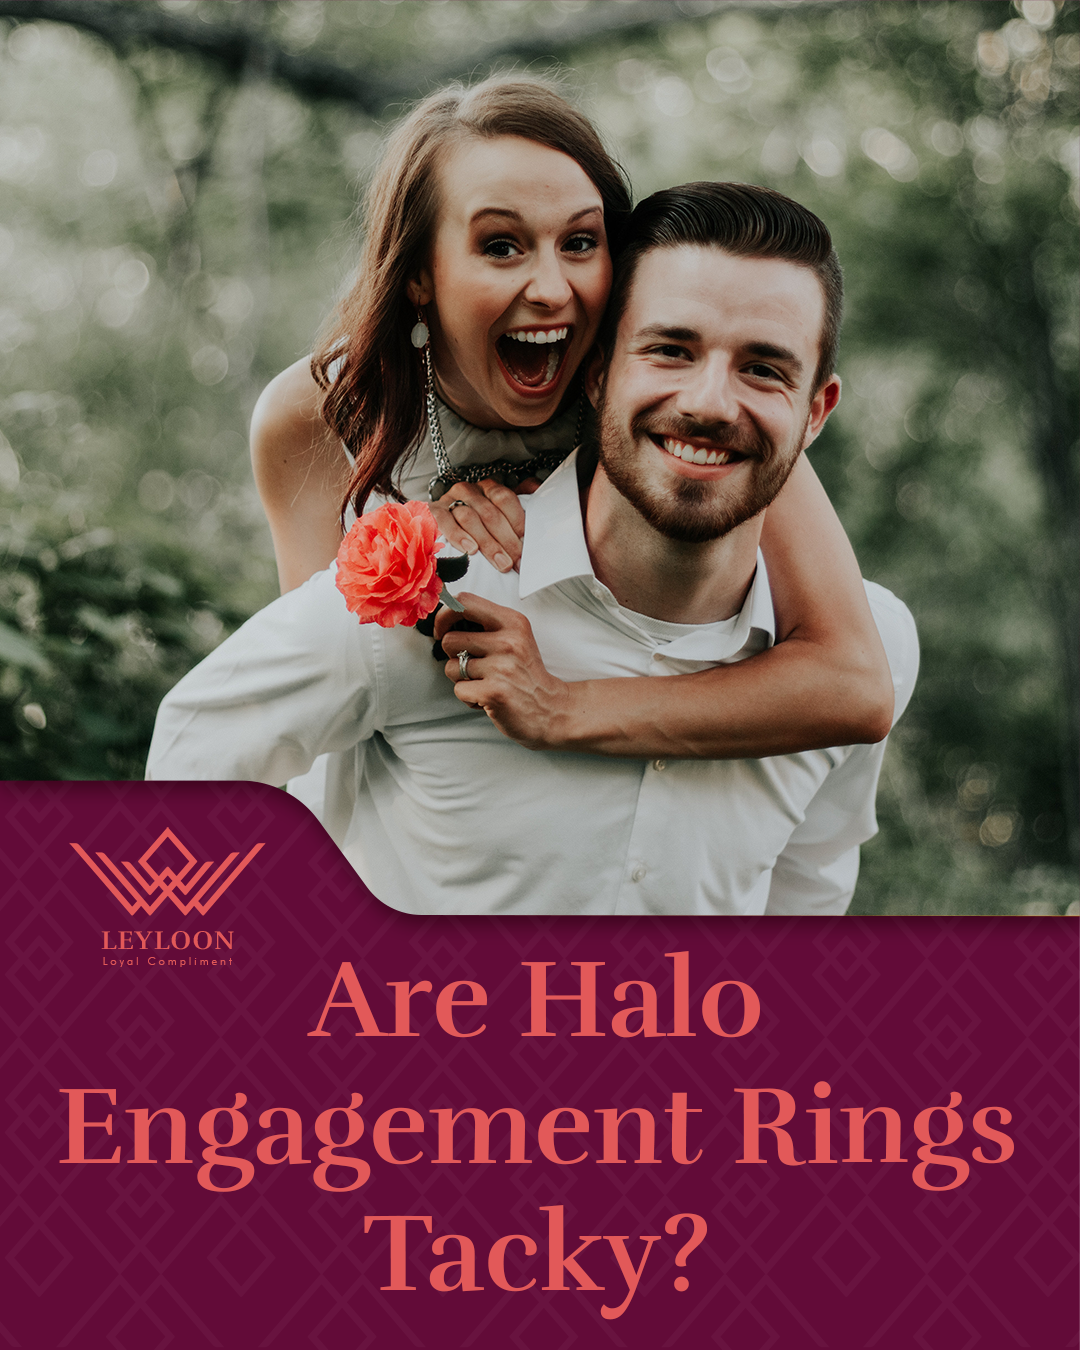 Are Halo Engagement Rings Tacky?